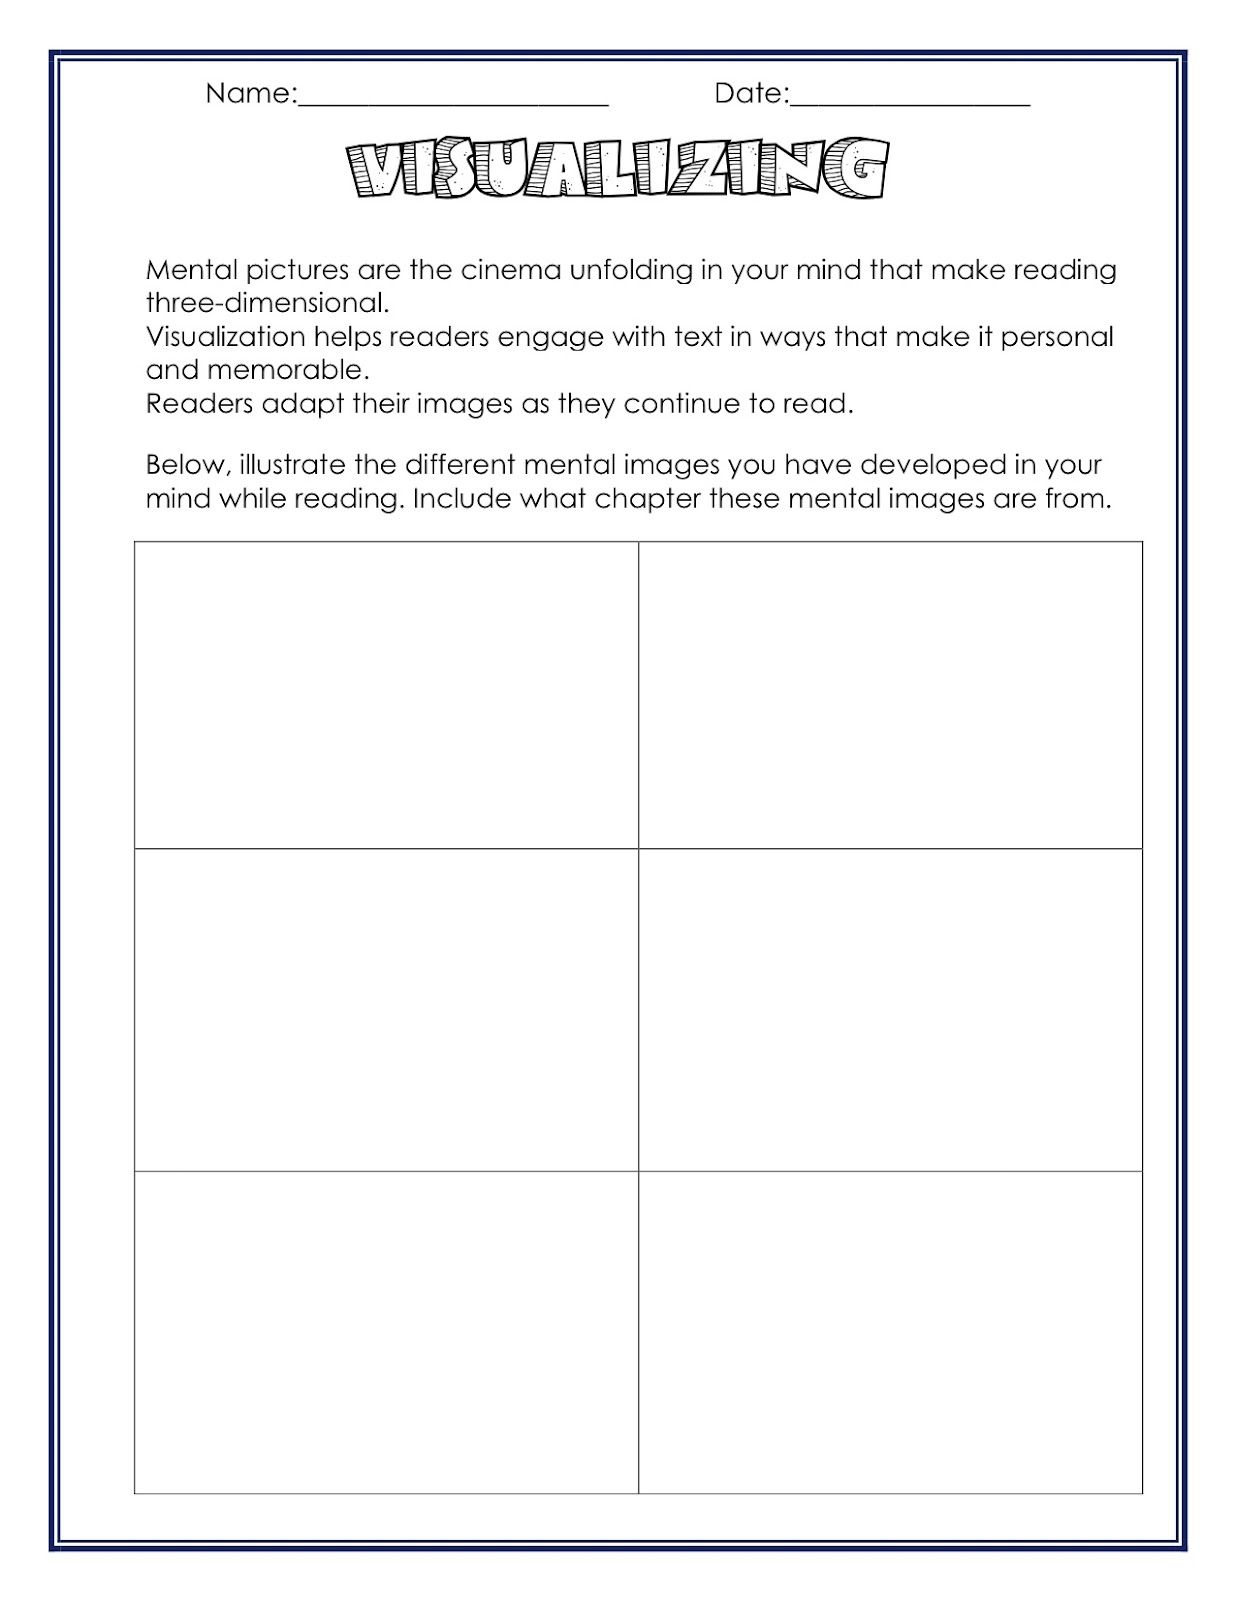 worksheet Imagery Worksheets neat visualizing worksheet ideas for school pinterest worksheet